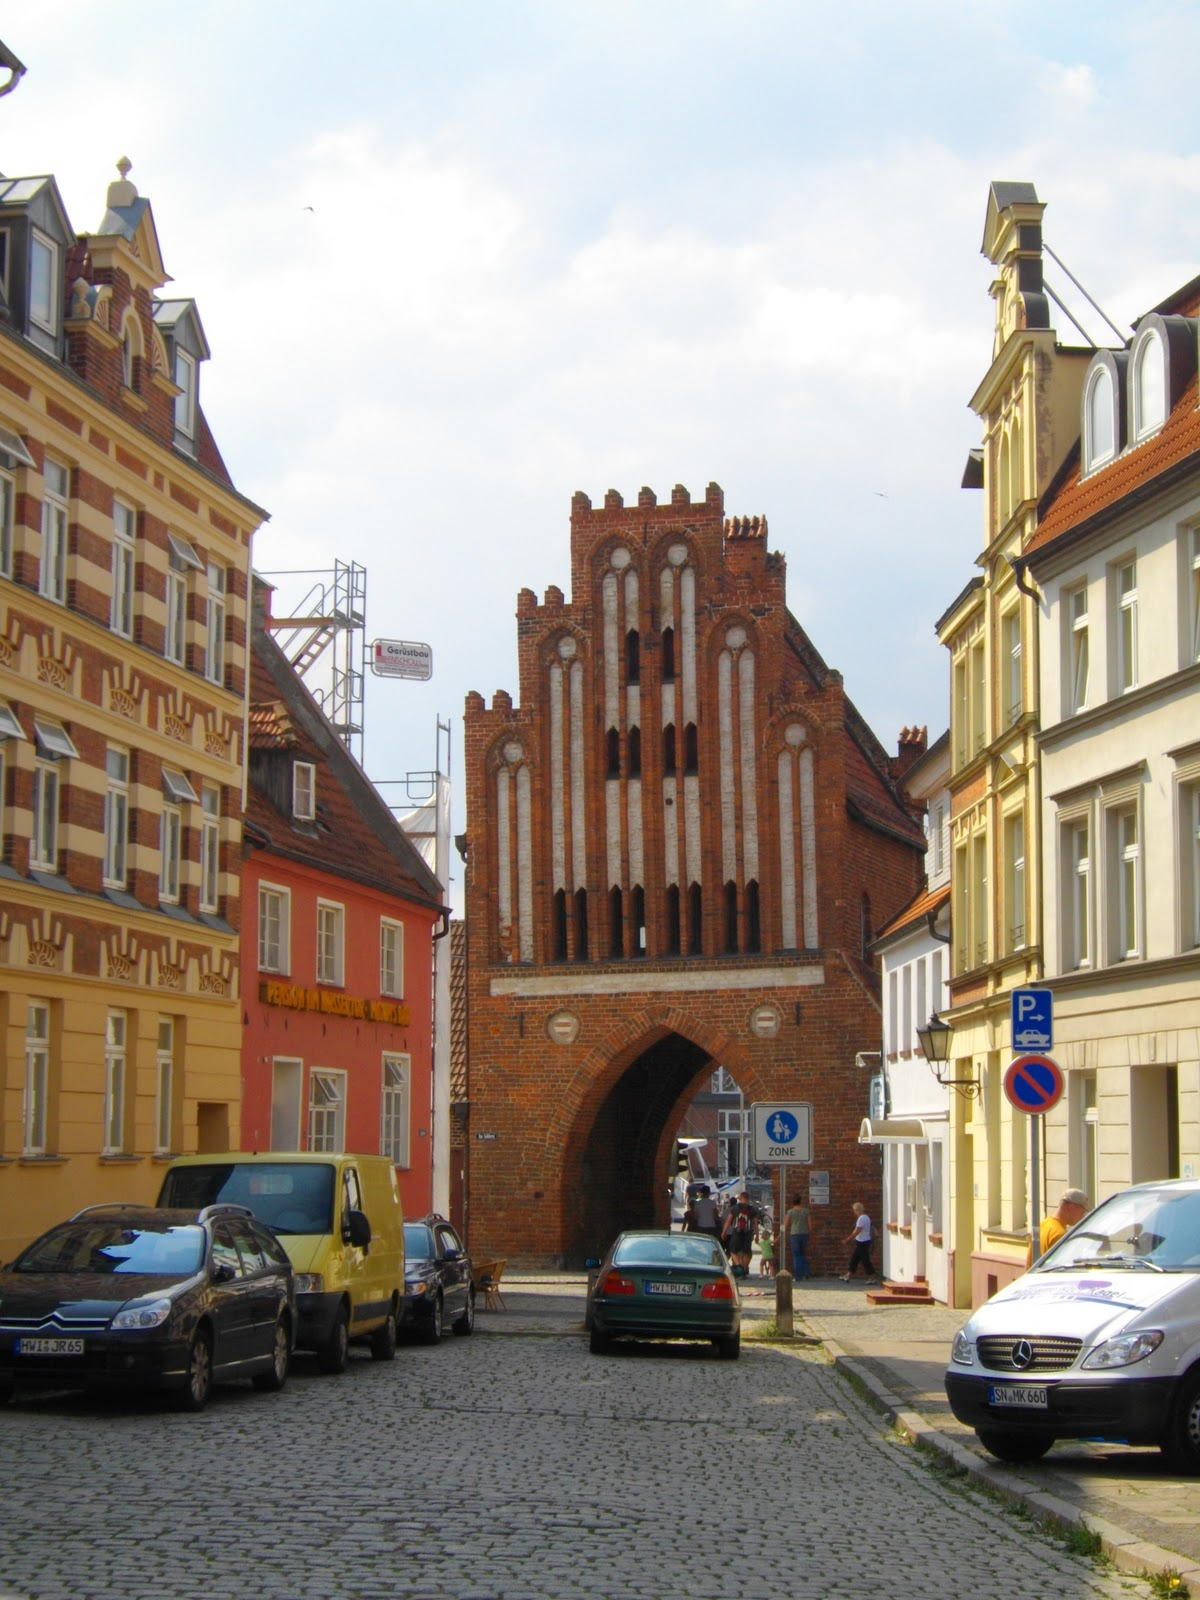 Wismar Germany  city photos gallery : Trip to Wismar, Germany part 2 | Life in Luxembourg